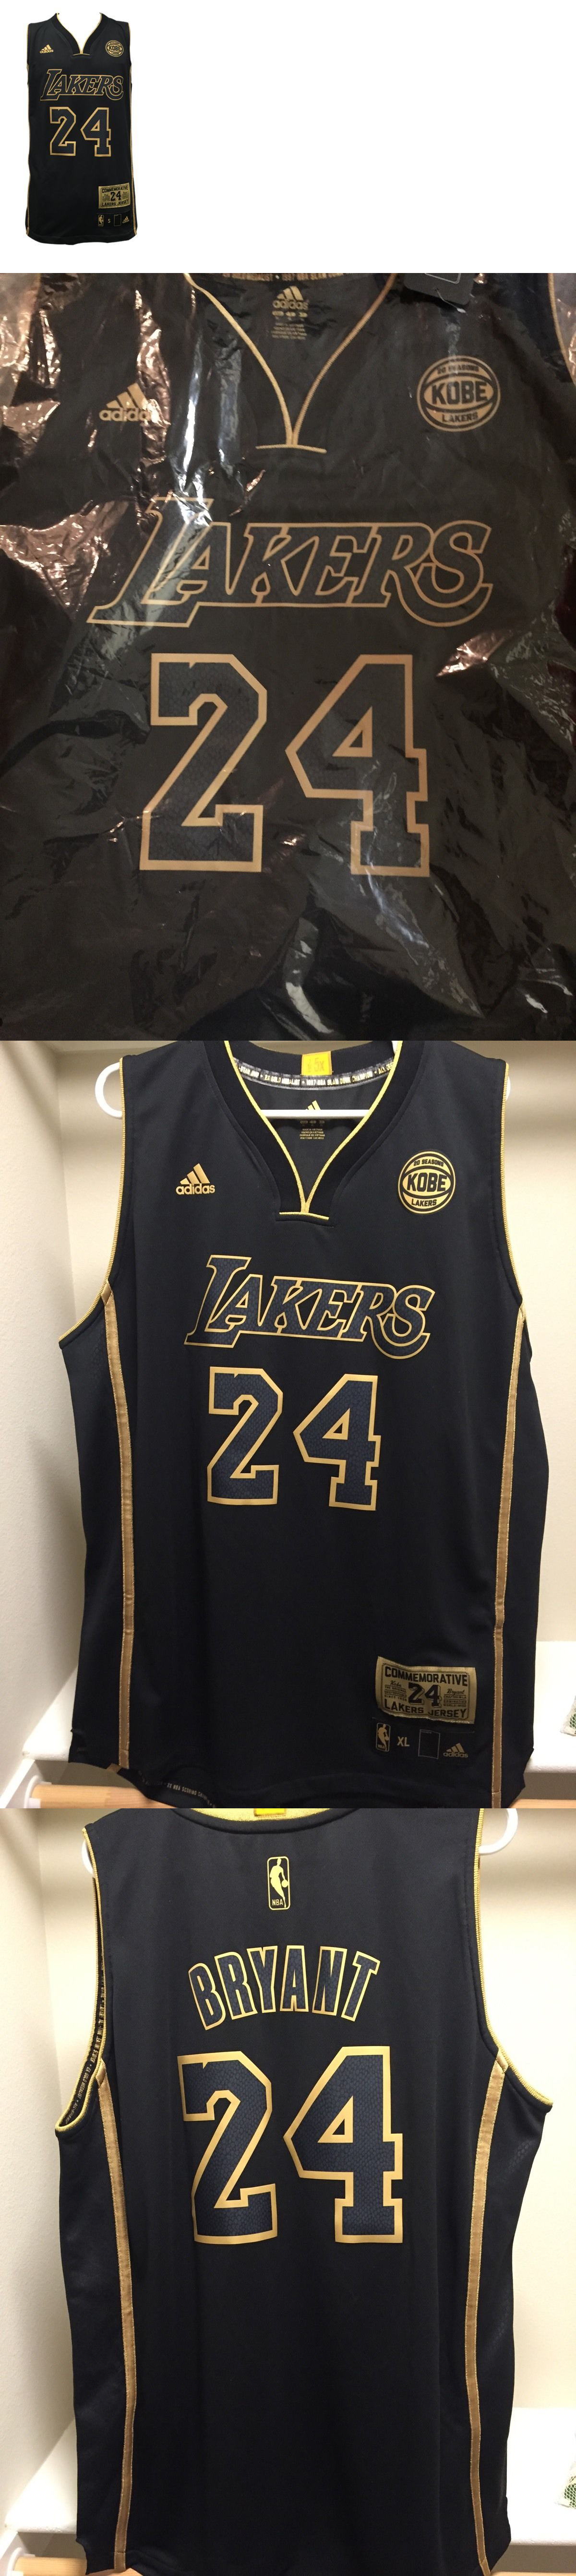 7676686e600 Men 158965: Kobe Bryant Retirement Limited Edition 1 824 Snakeskin Accent  Swingman Jersey Xl -